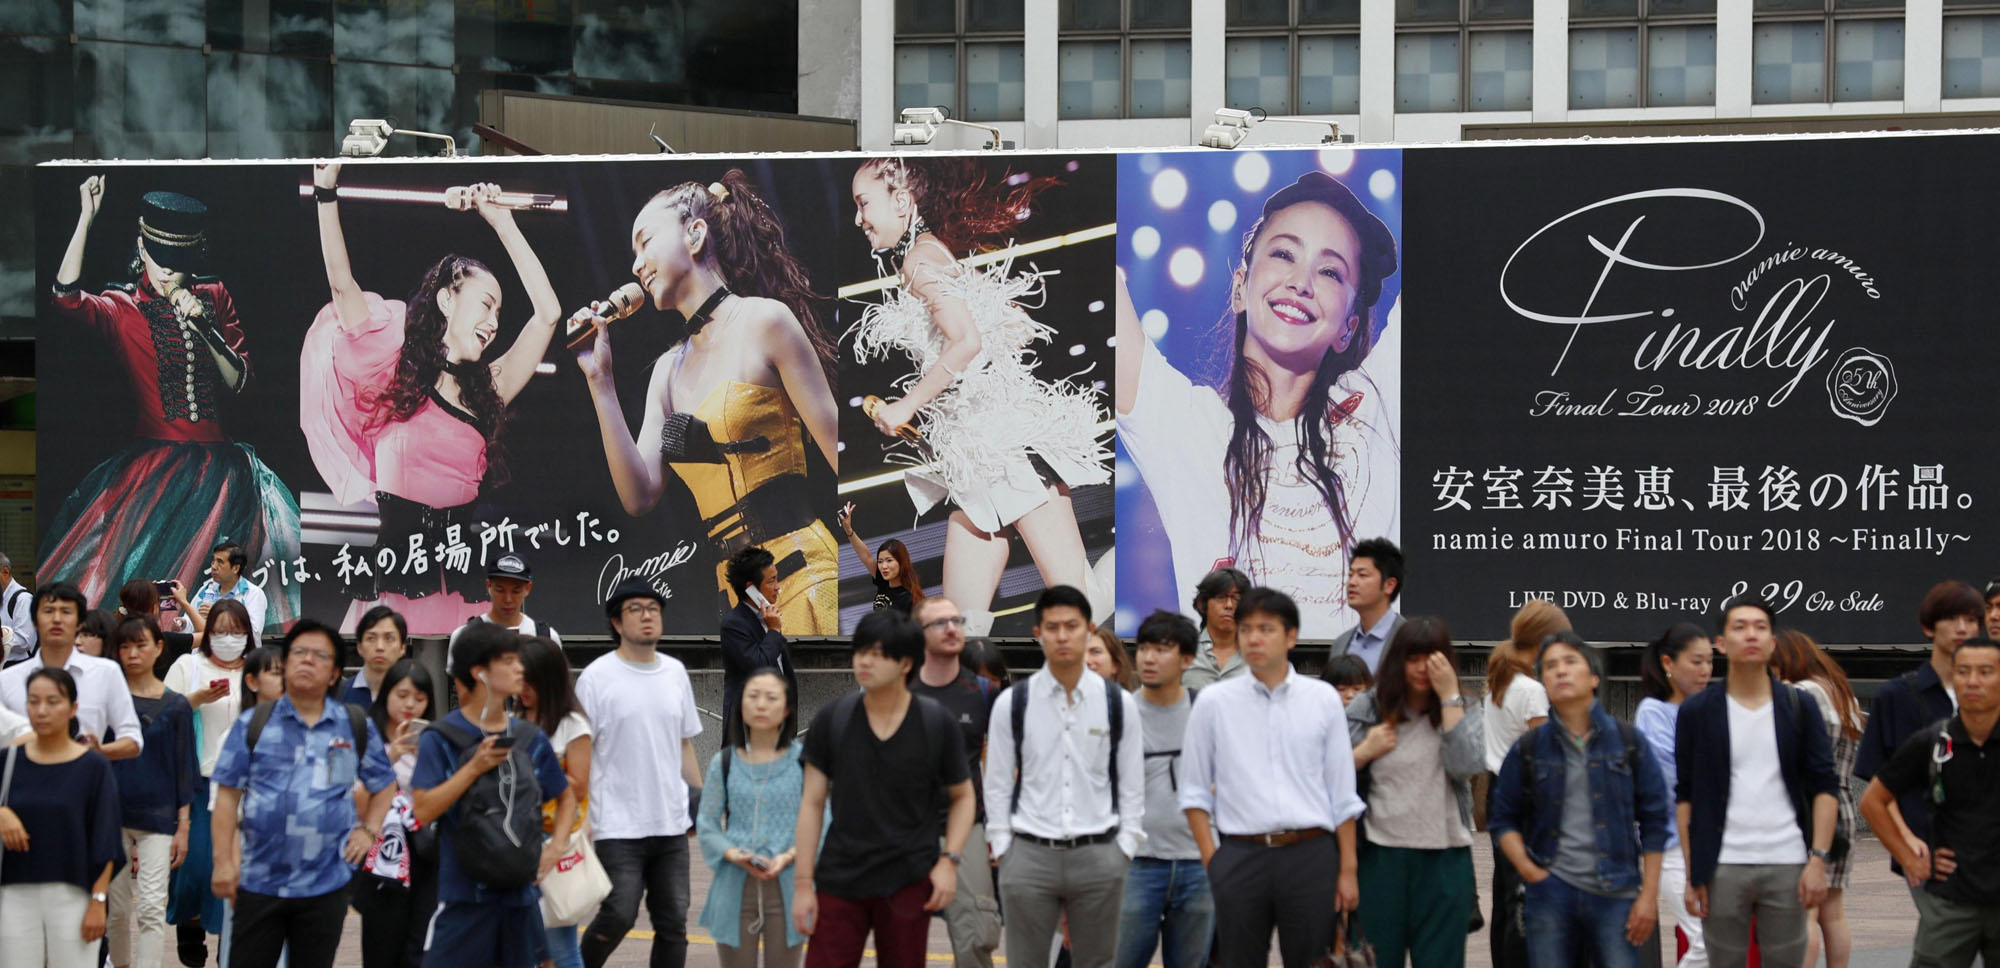 An advertisement near Shibuya Station promotes a video recording of Namie Amuro's last music tour, which hit stores Wednesday. | KYODO